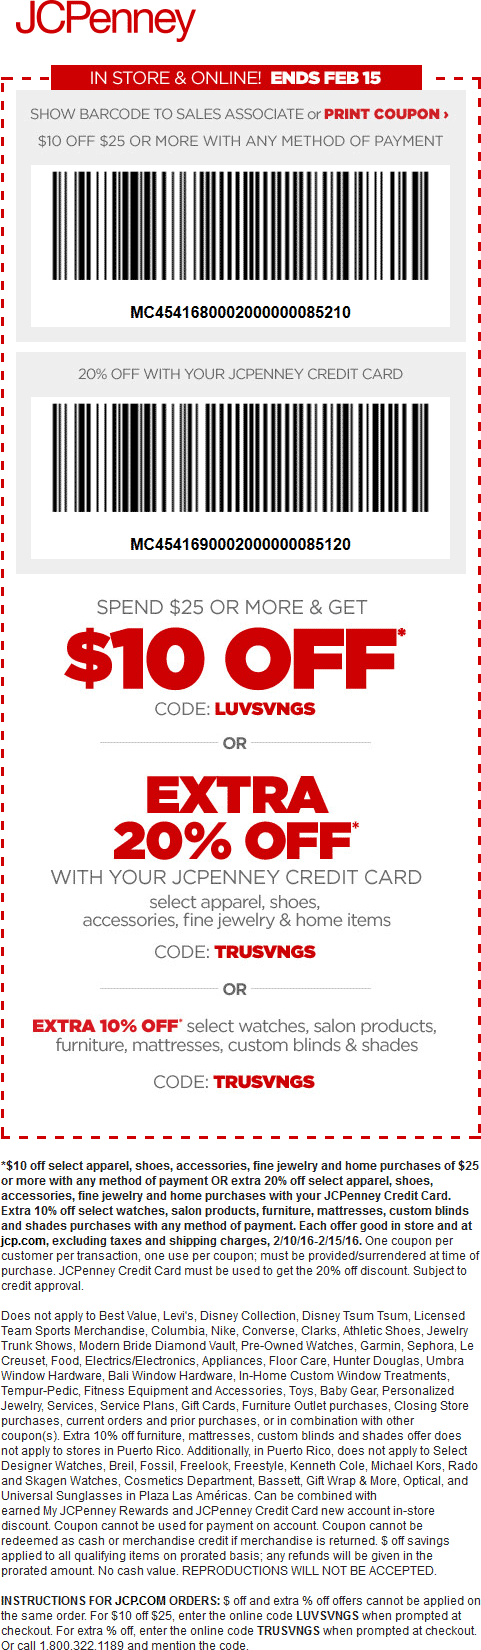 JCPenney coupons & promo code for [June 2020]